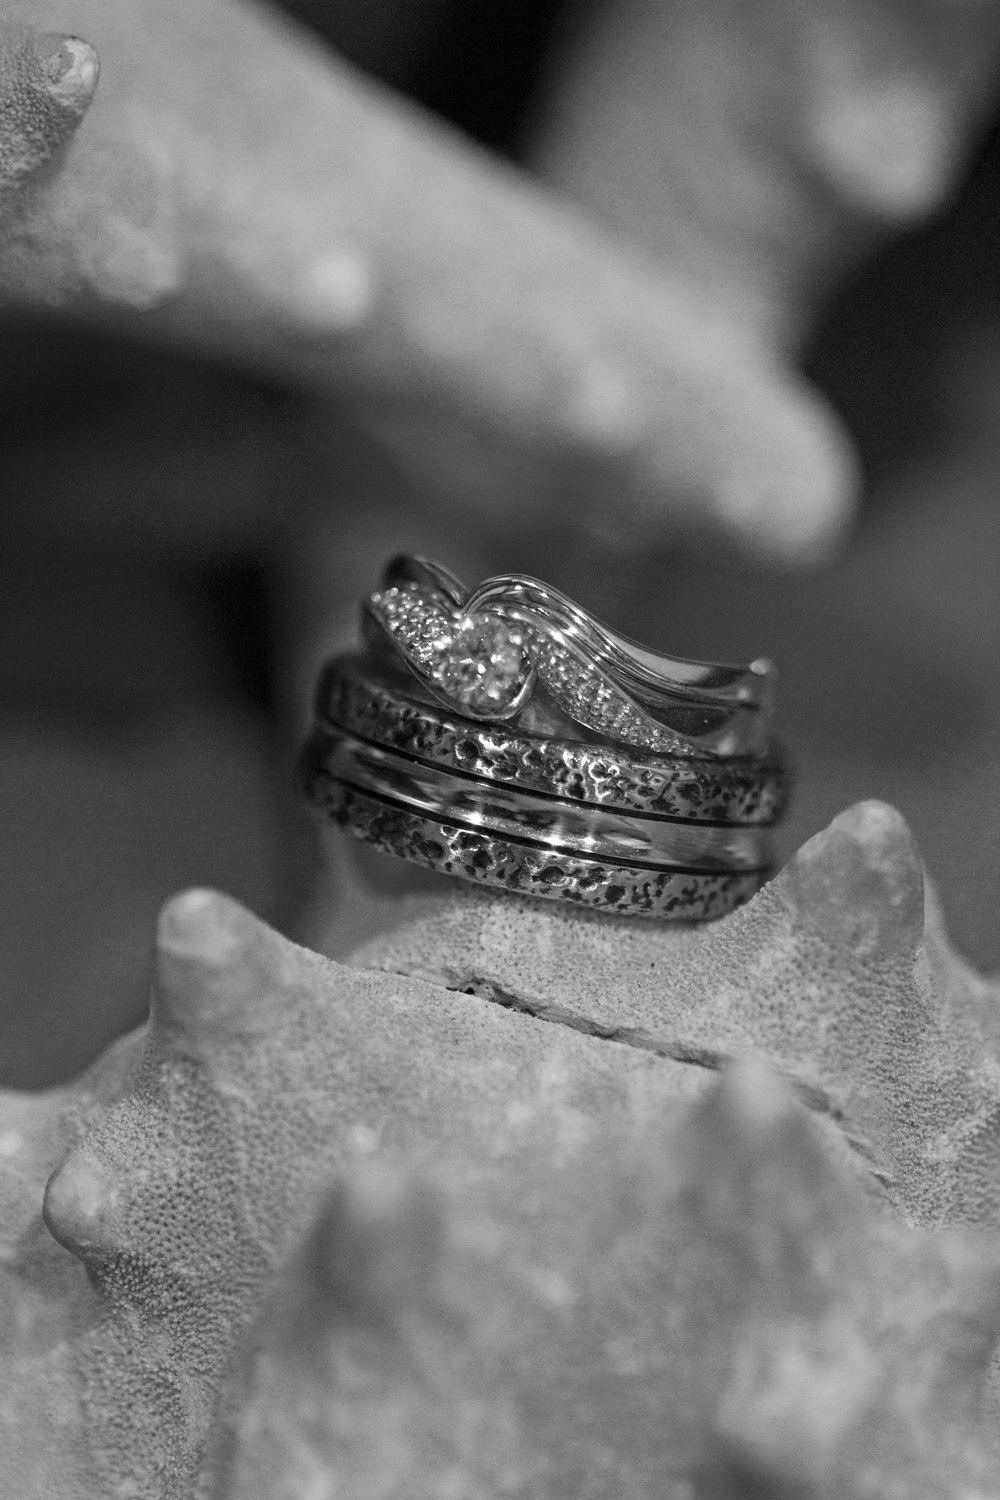 Rings on SF CU BW.jpg